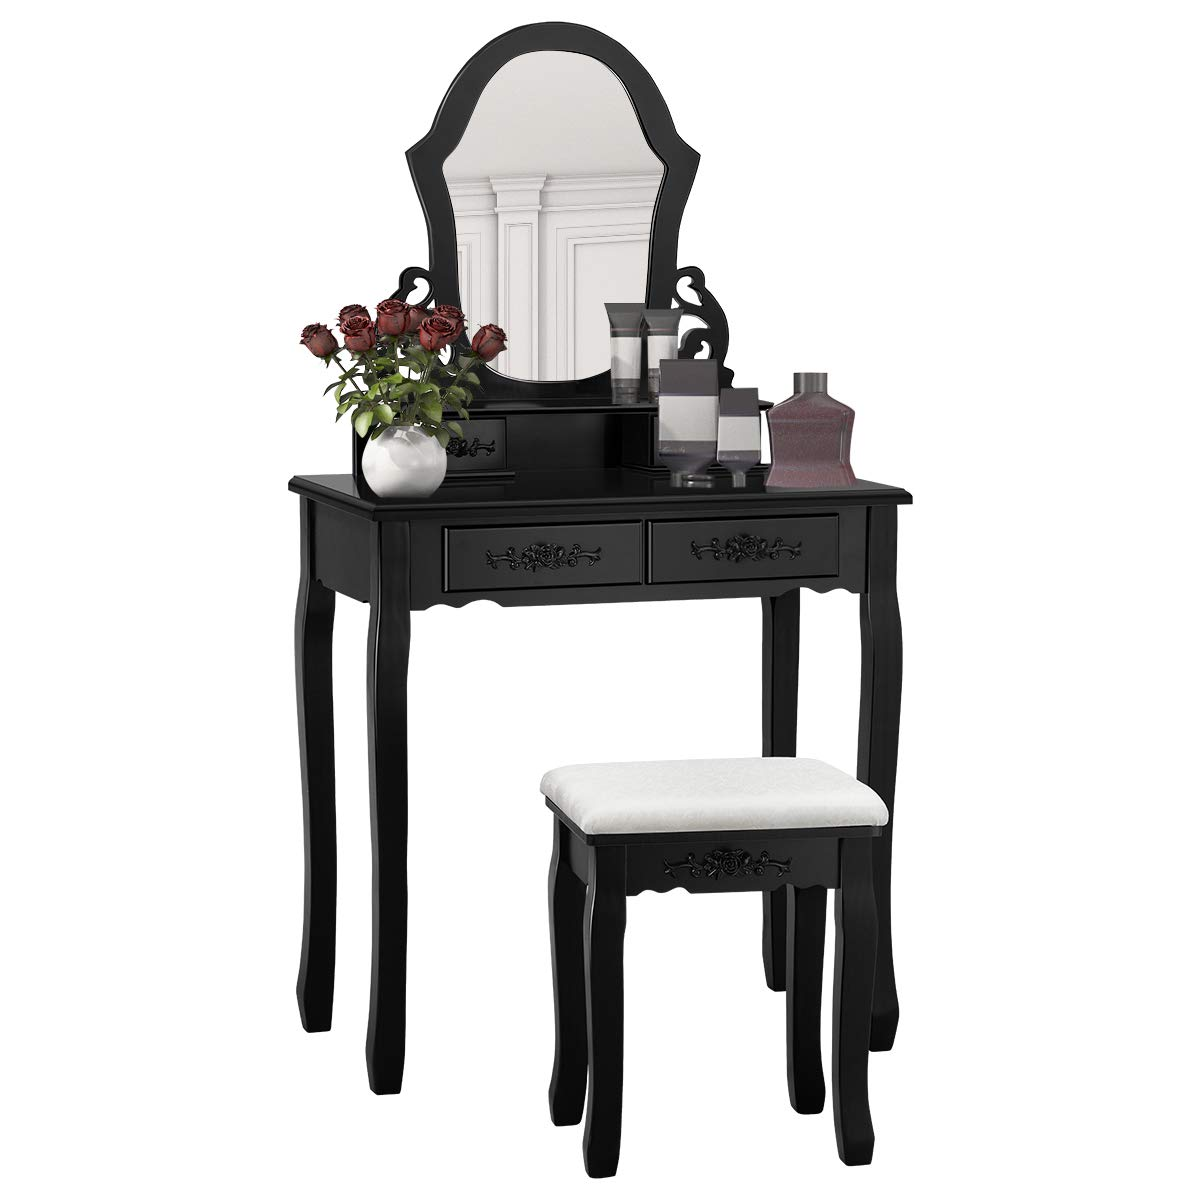 Giantex Vanity Wood Makeup Dressing Table Stool Set Bedroom with Mirror (Black, 20.0' Lx12.0 Wx53.5 H) 20.0 Lx12.0 Wx53.5 H) HW52951BK